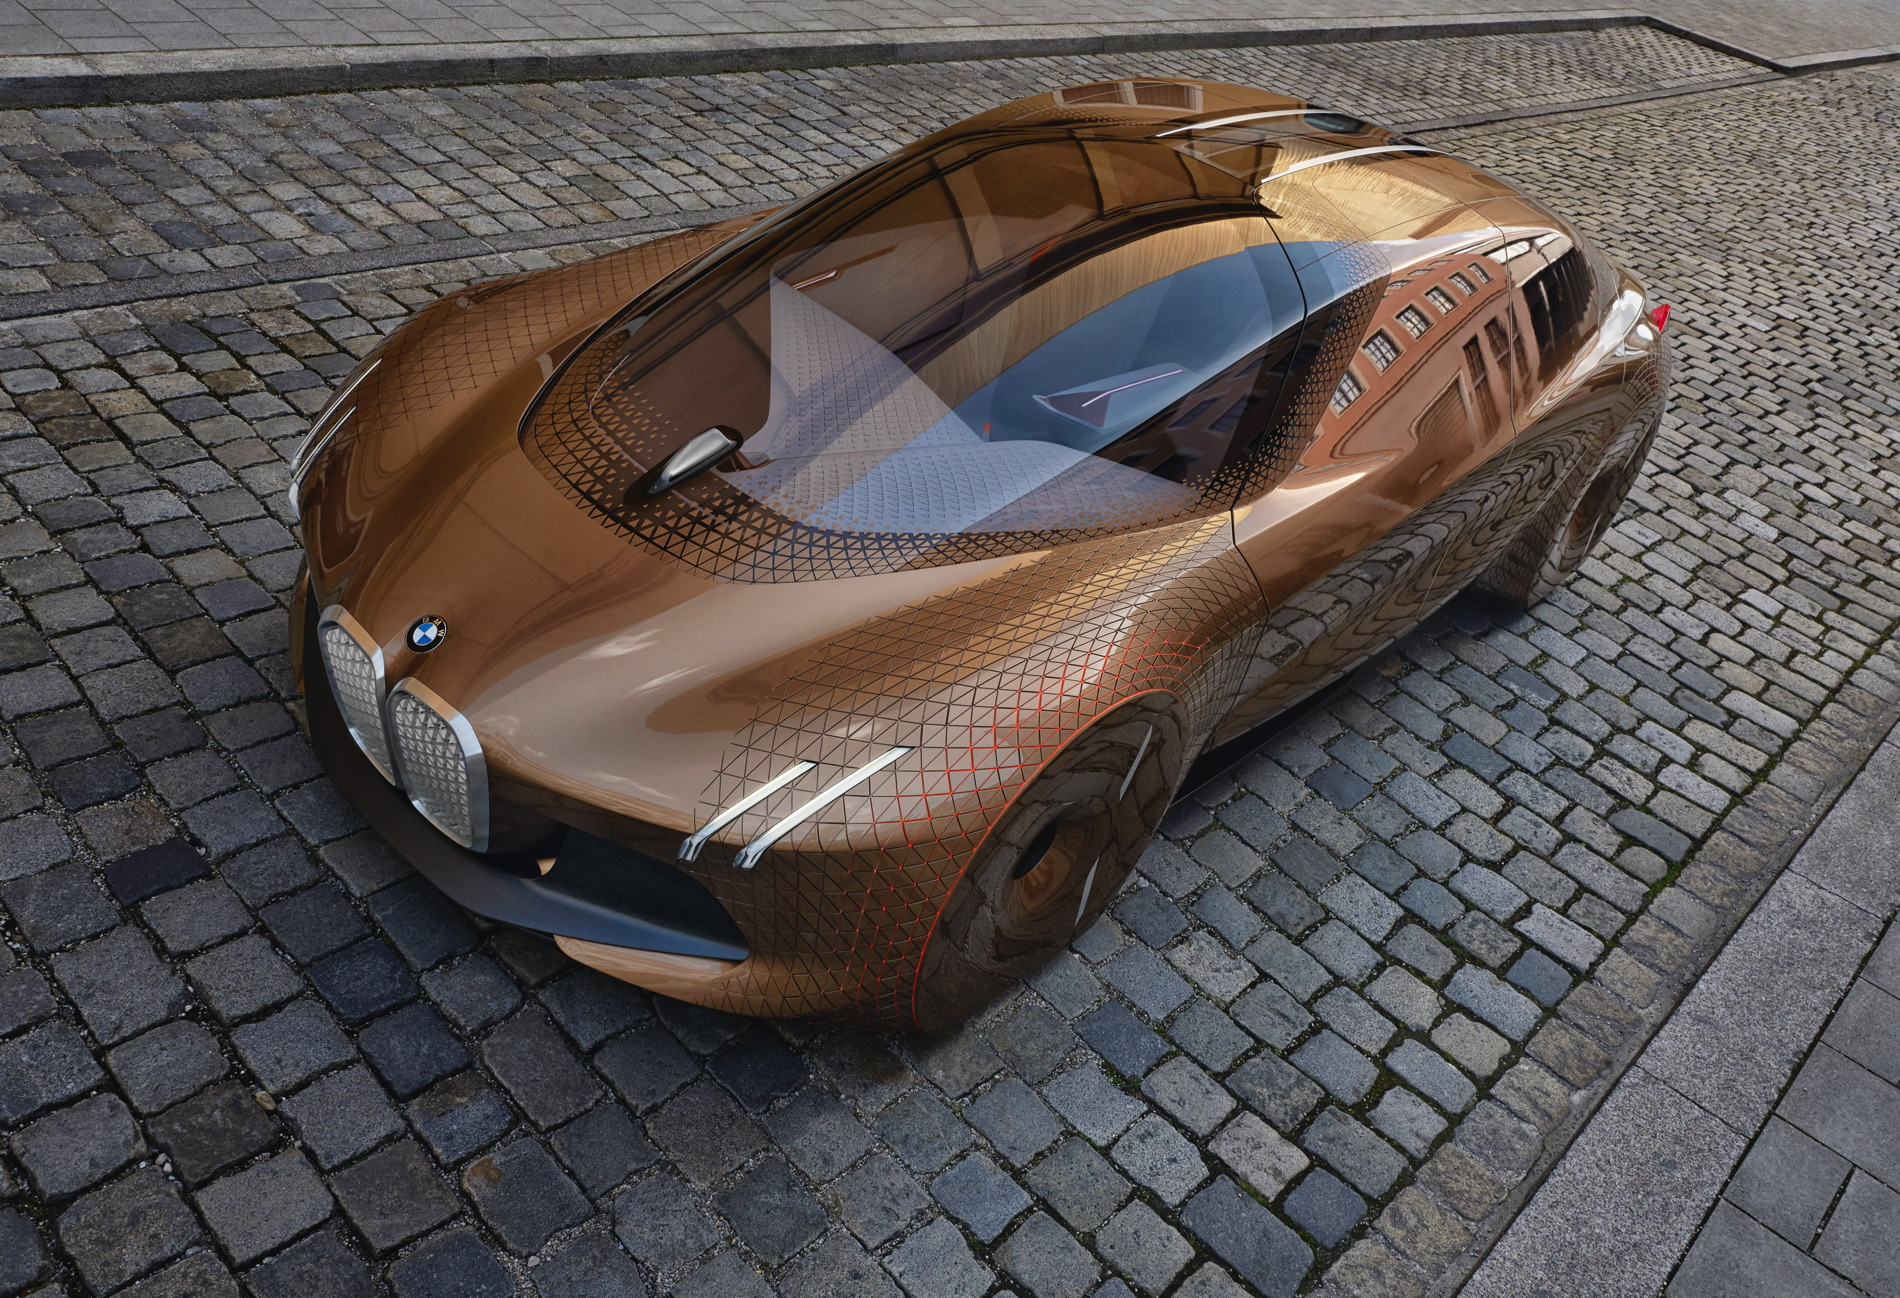 BMW Vision Next 100 images 148